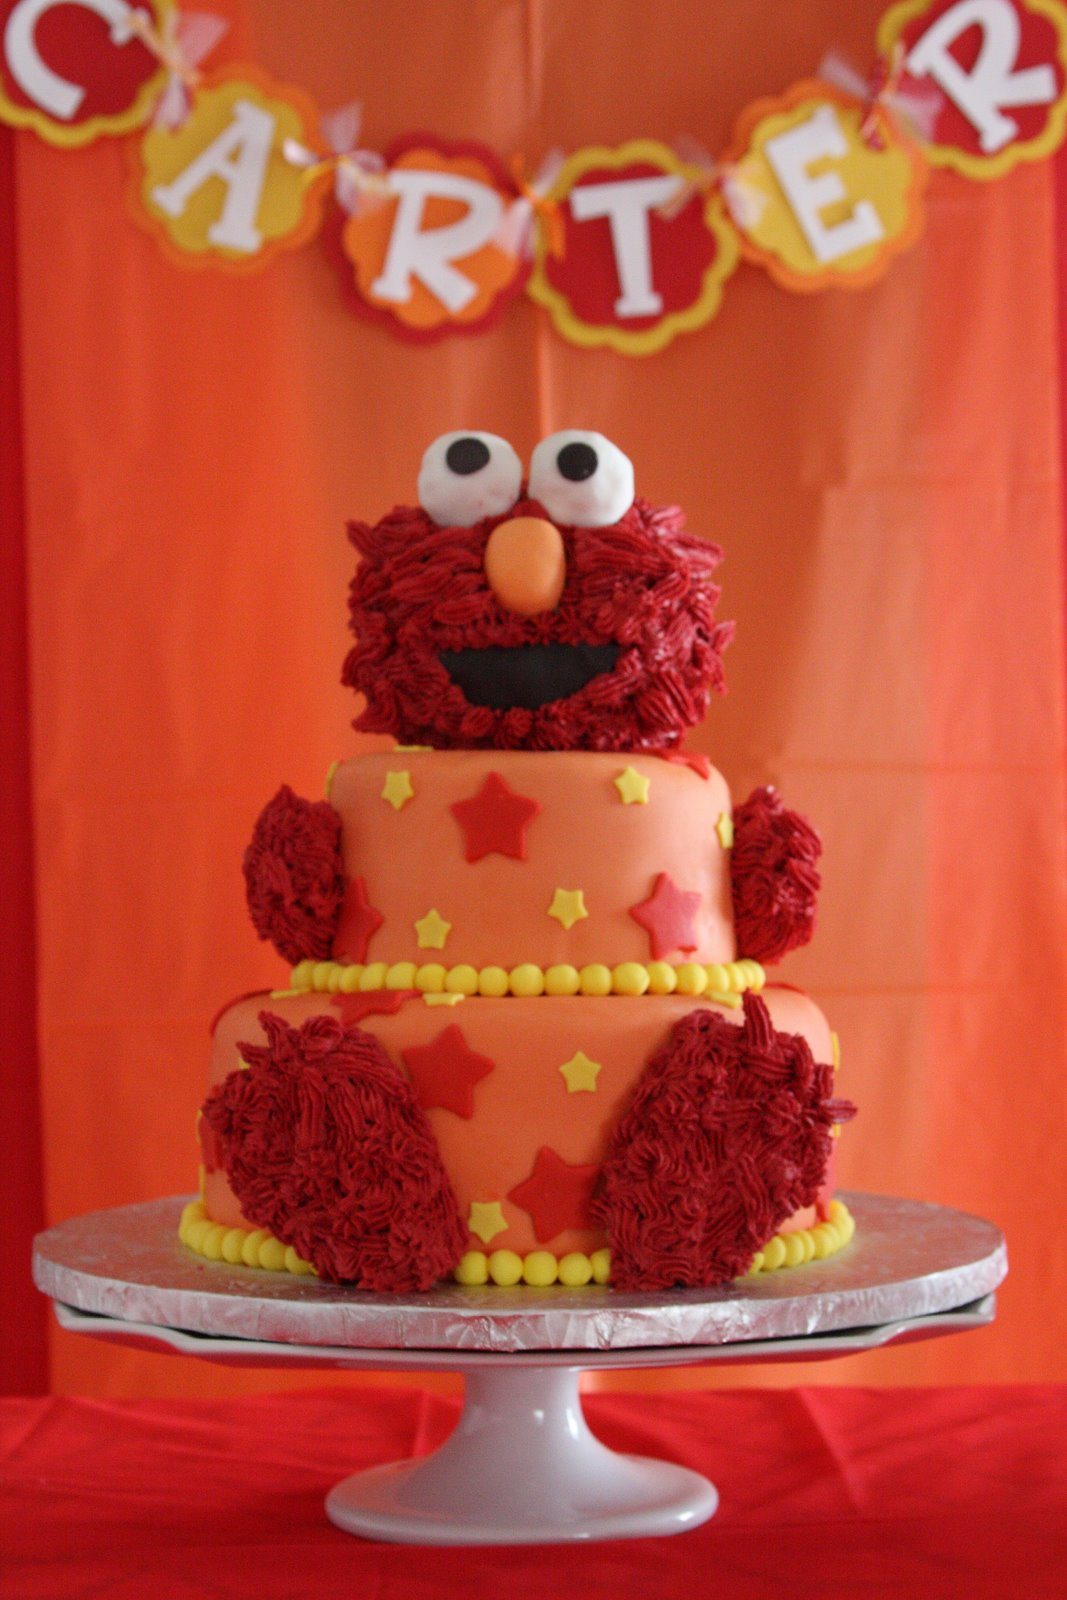 How To Make An Elmo Cake Without A Pan